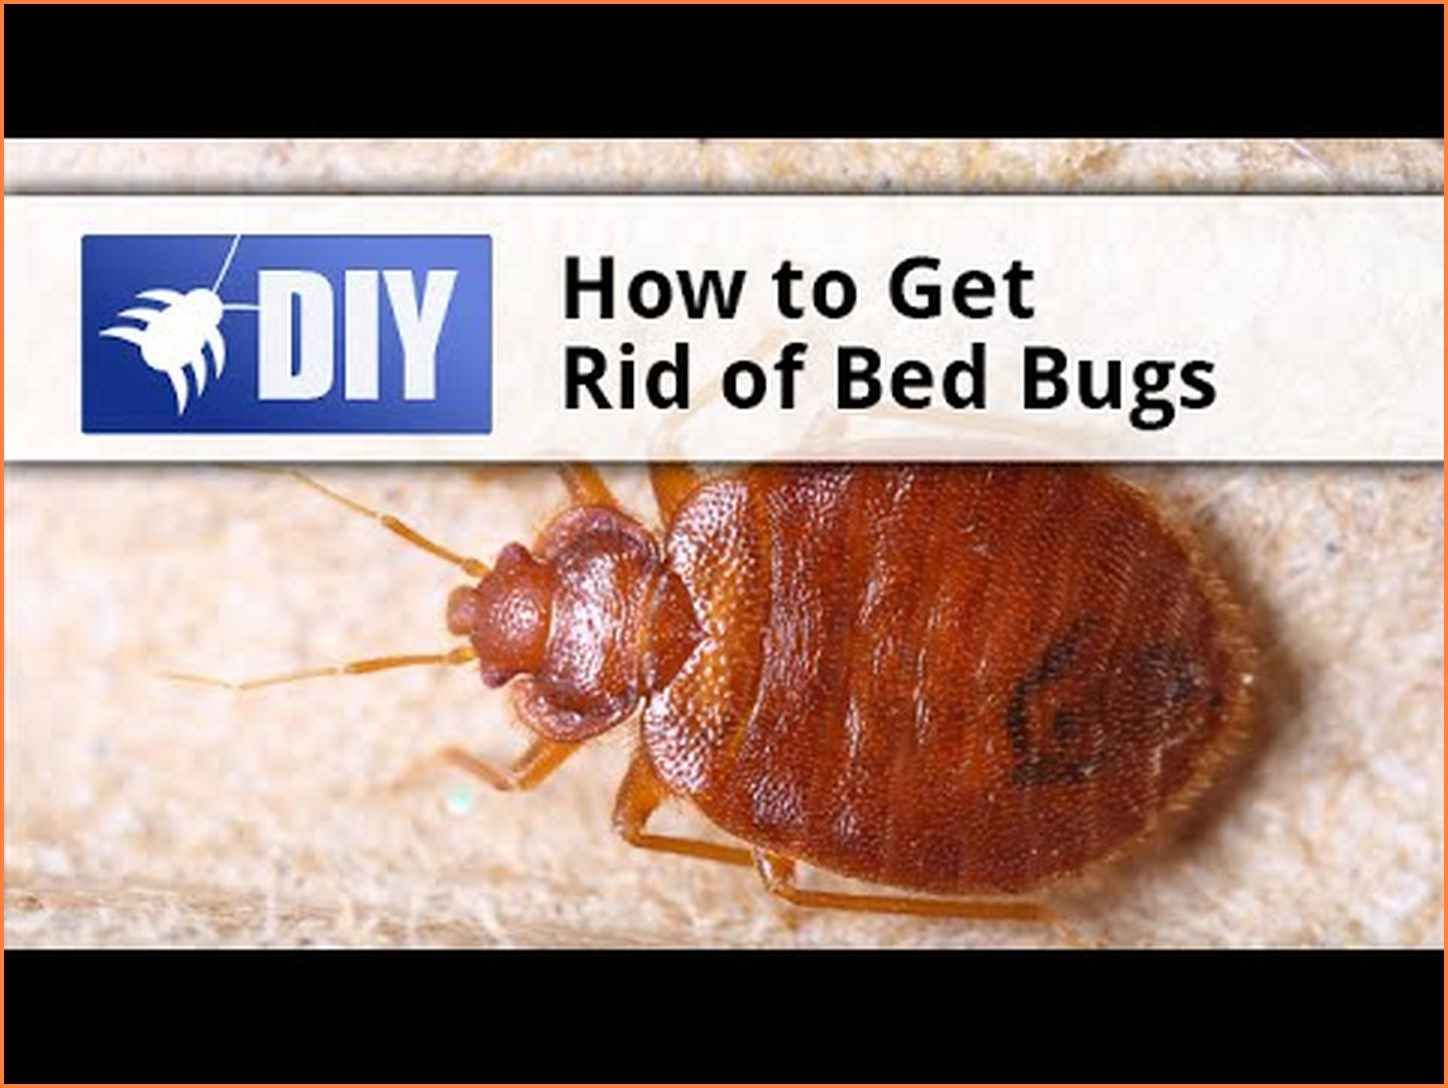 How to get rid of bed bugs in a couch rid of bed bugs